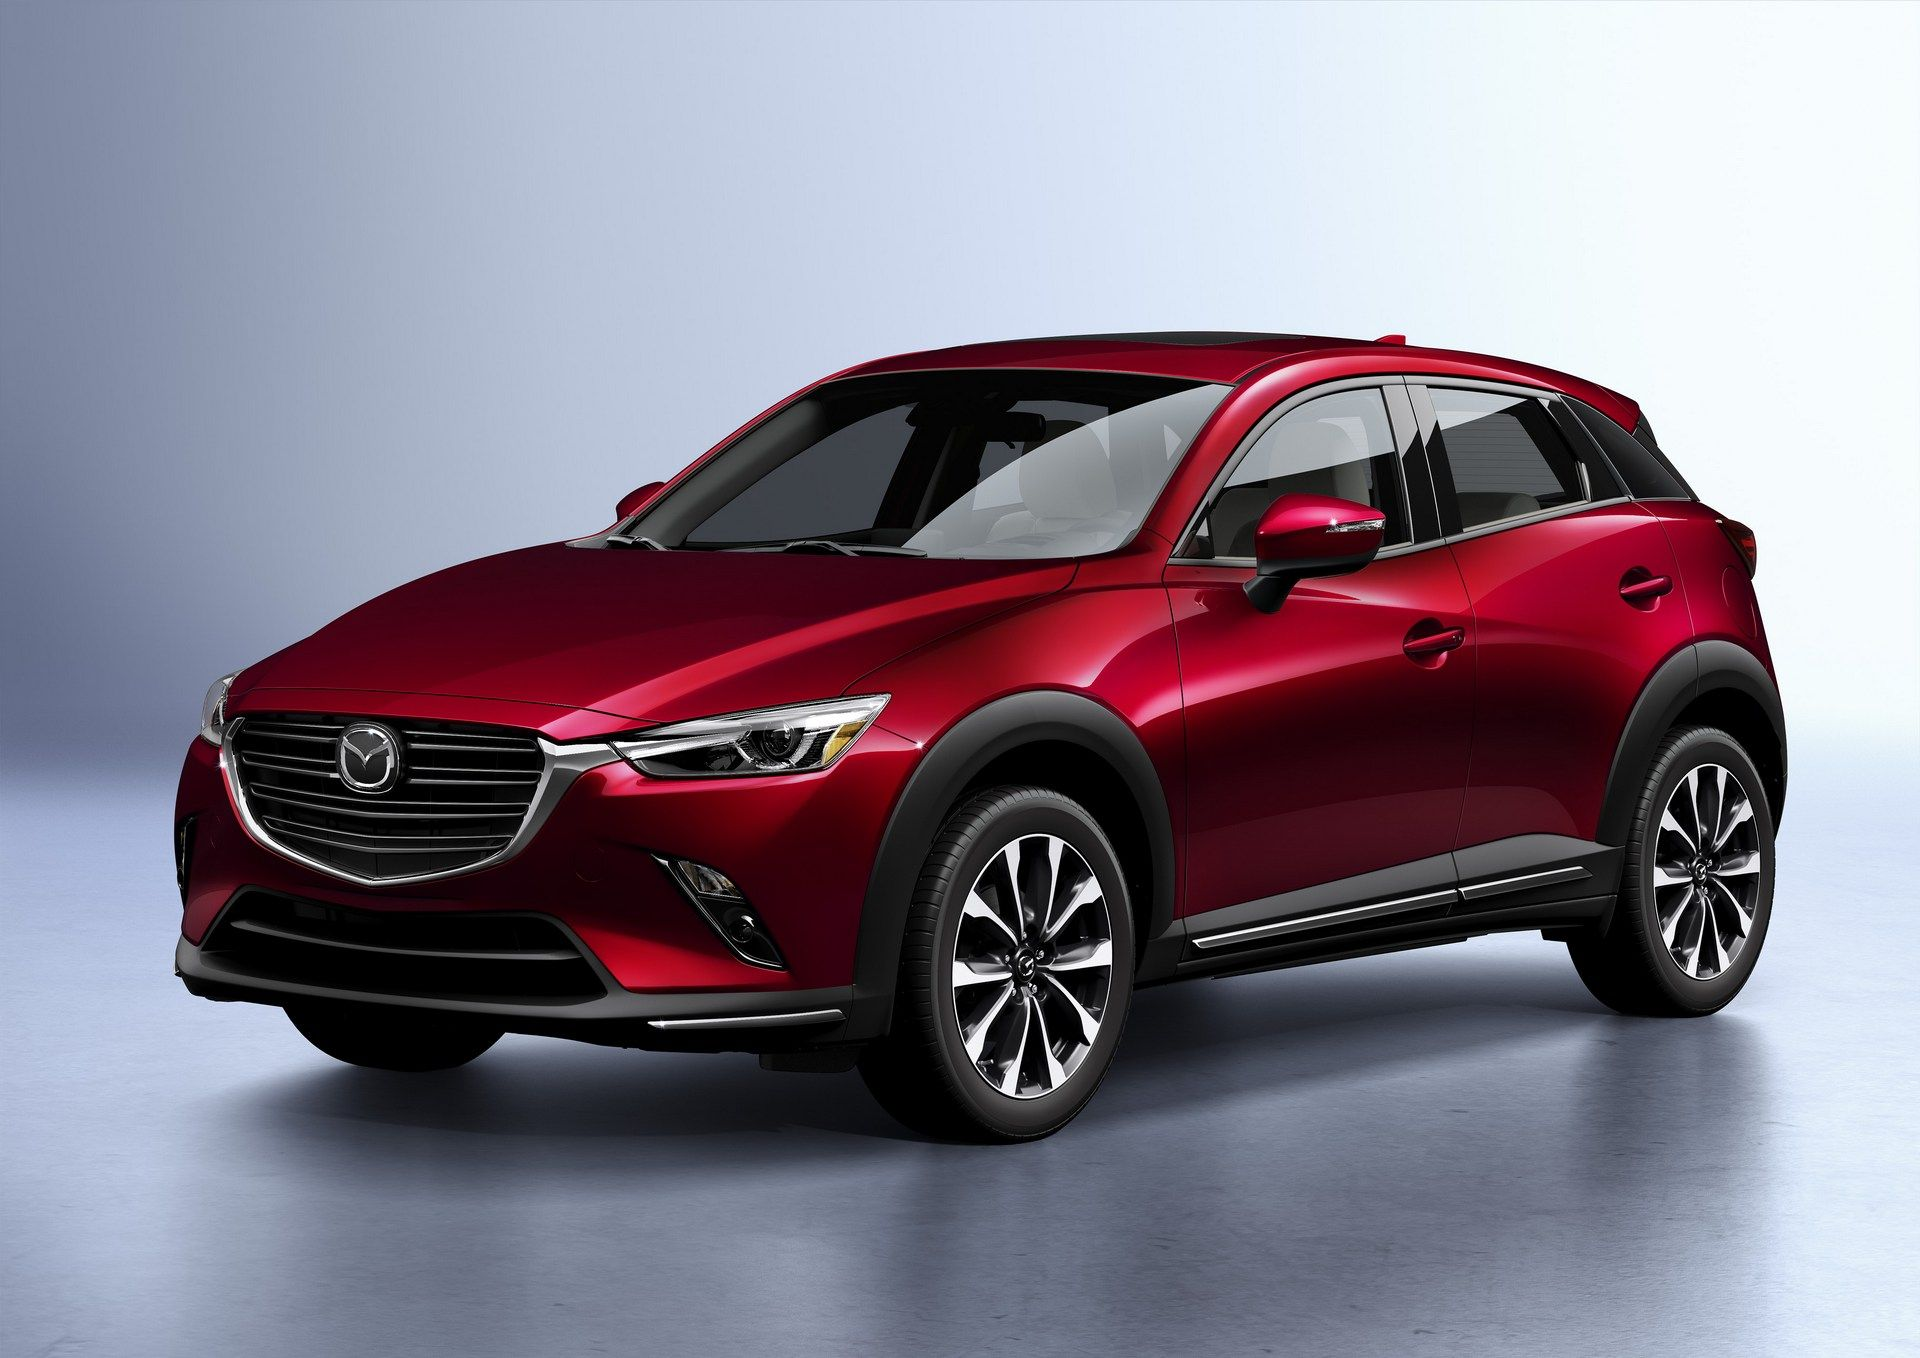 2019 mazda cx 3 goes on sale this month for 20 390. Black Bedroom Furniture Sets. Home Design Ideas